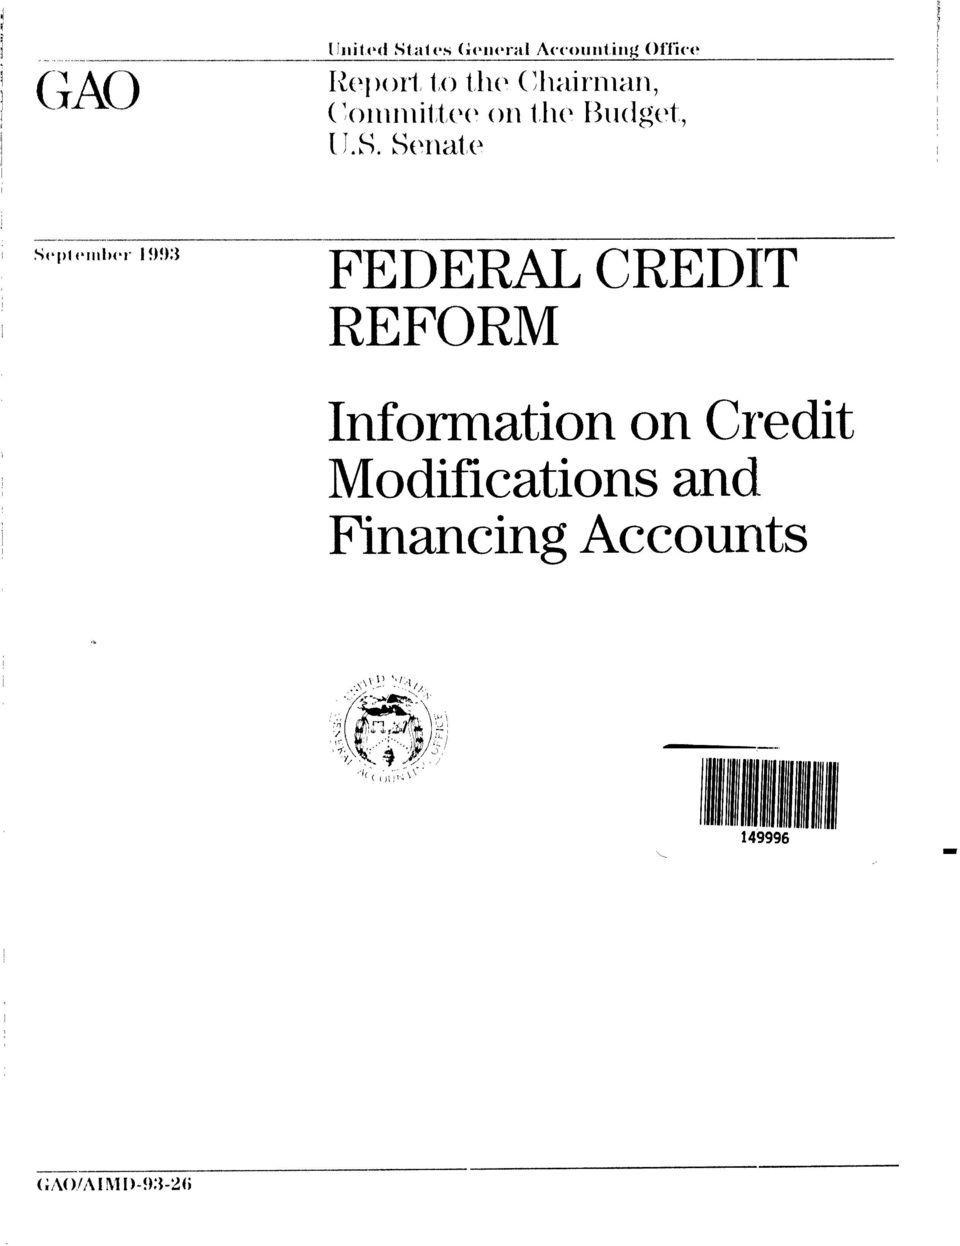 Credit Modifications and Financing Accounts